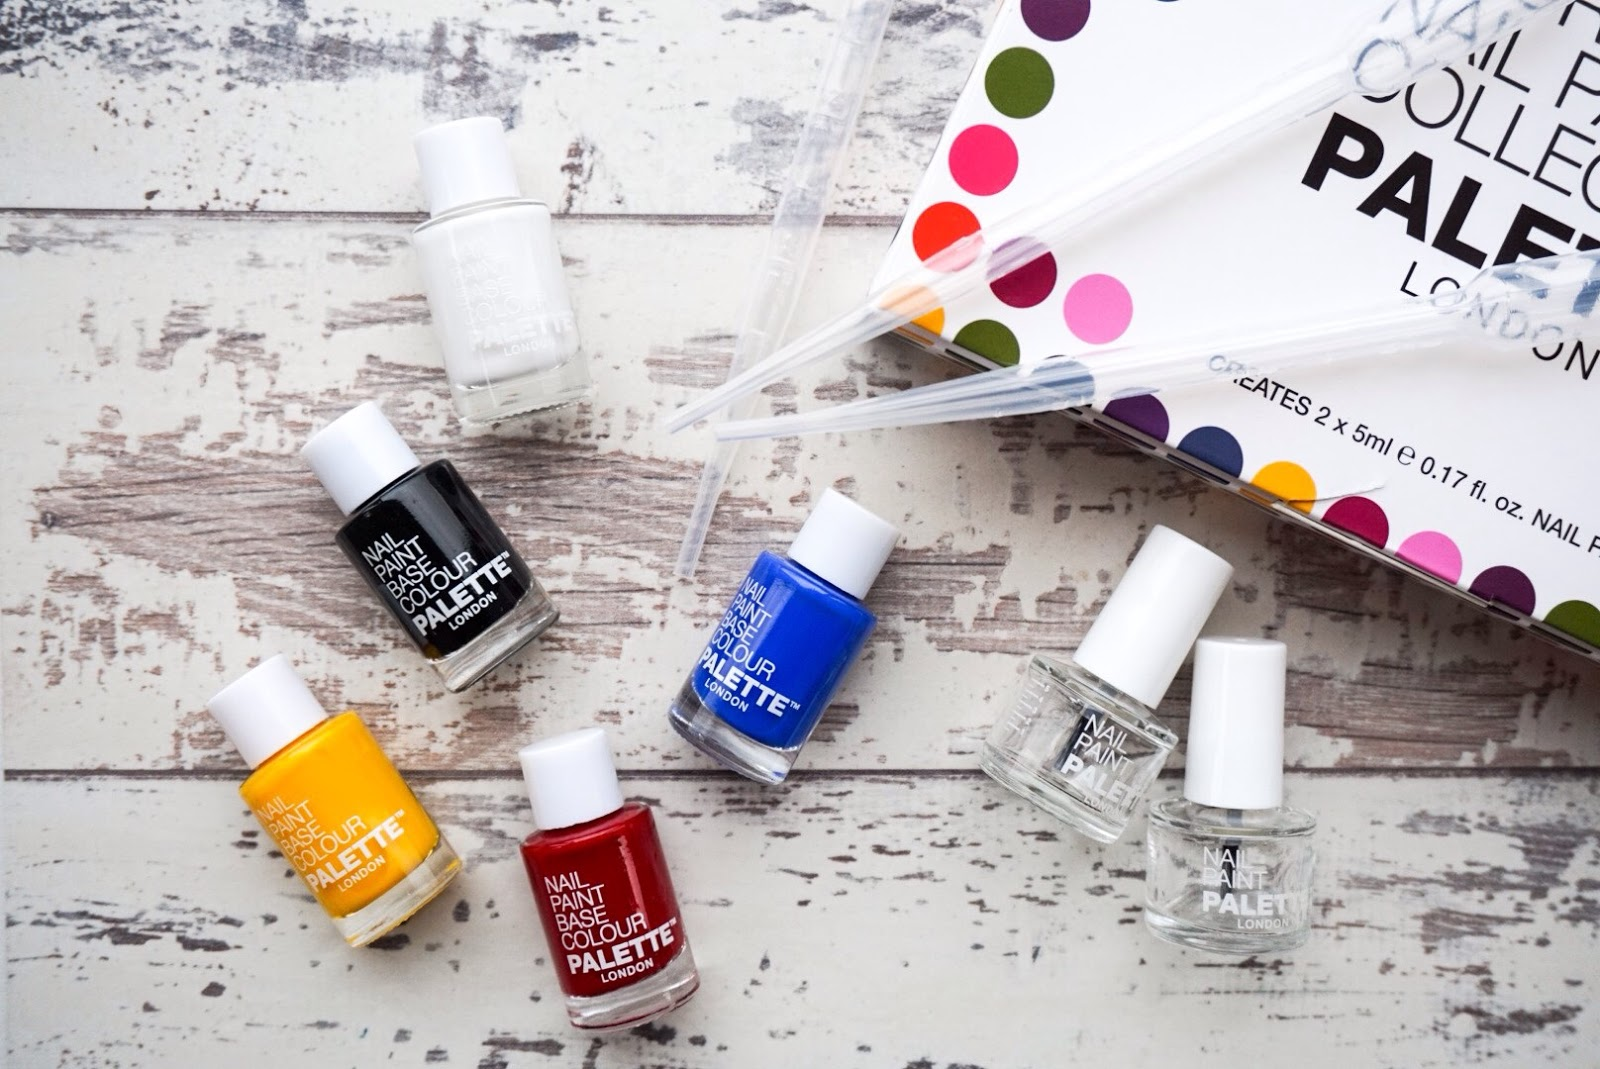 Get creative with Palette London